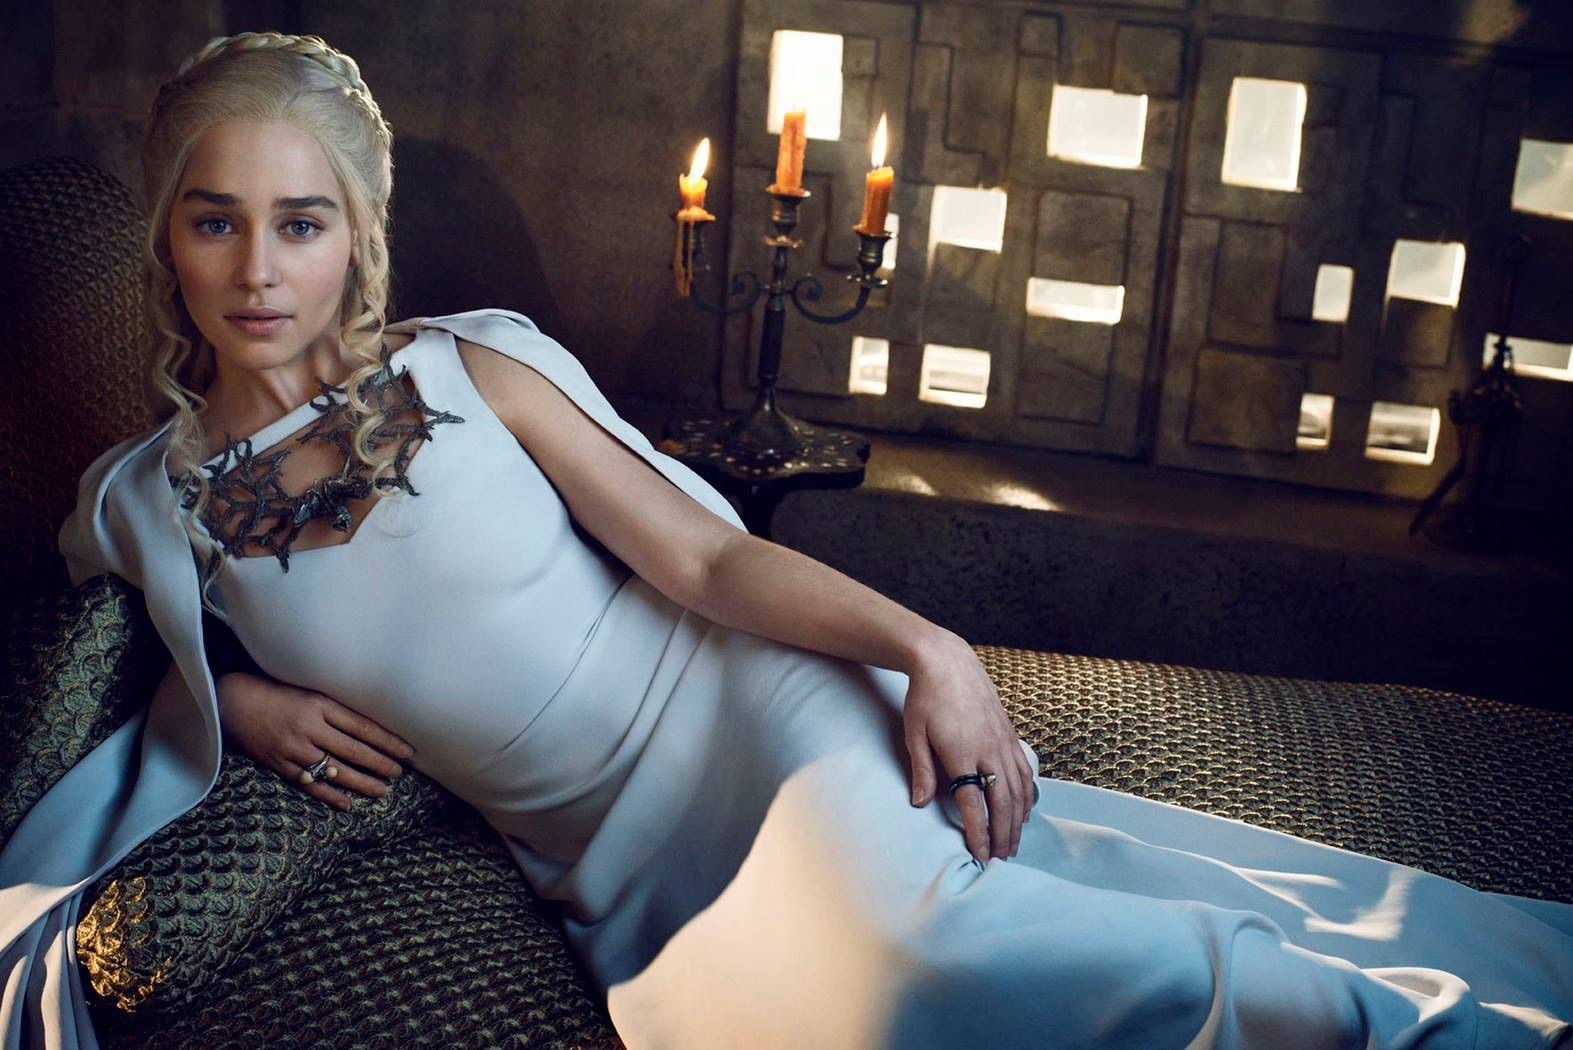 Game Of Thrones Is So Popular It Caused Internet Porn Searches To